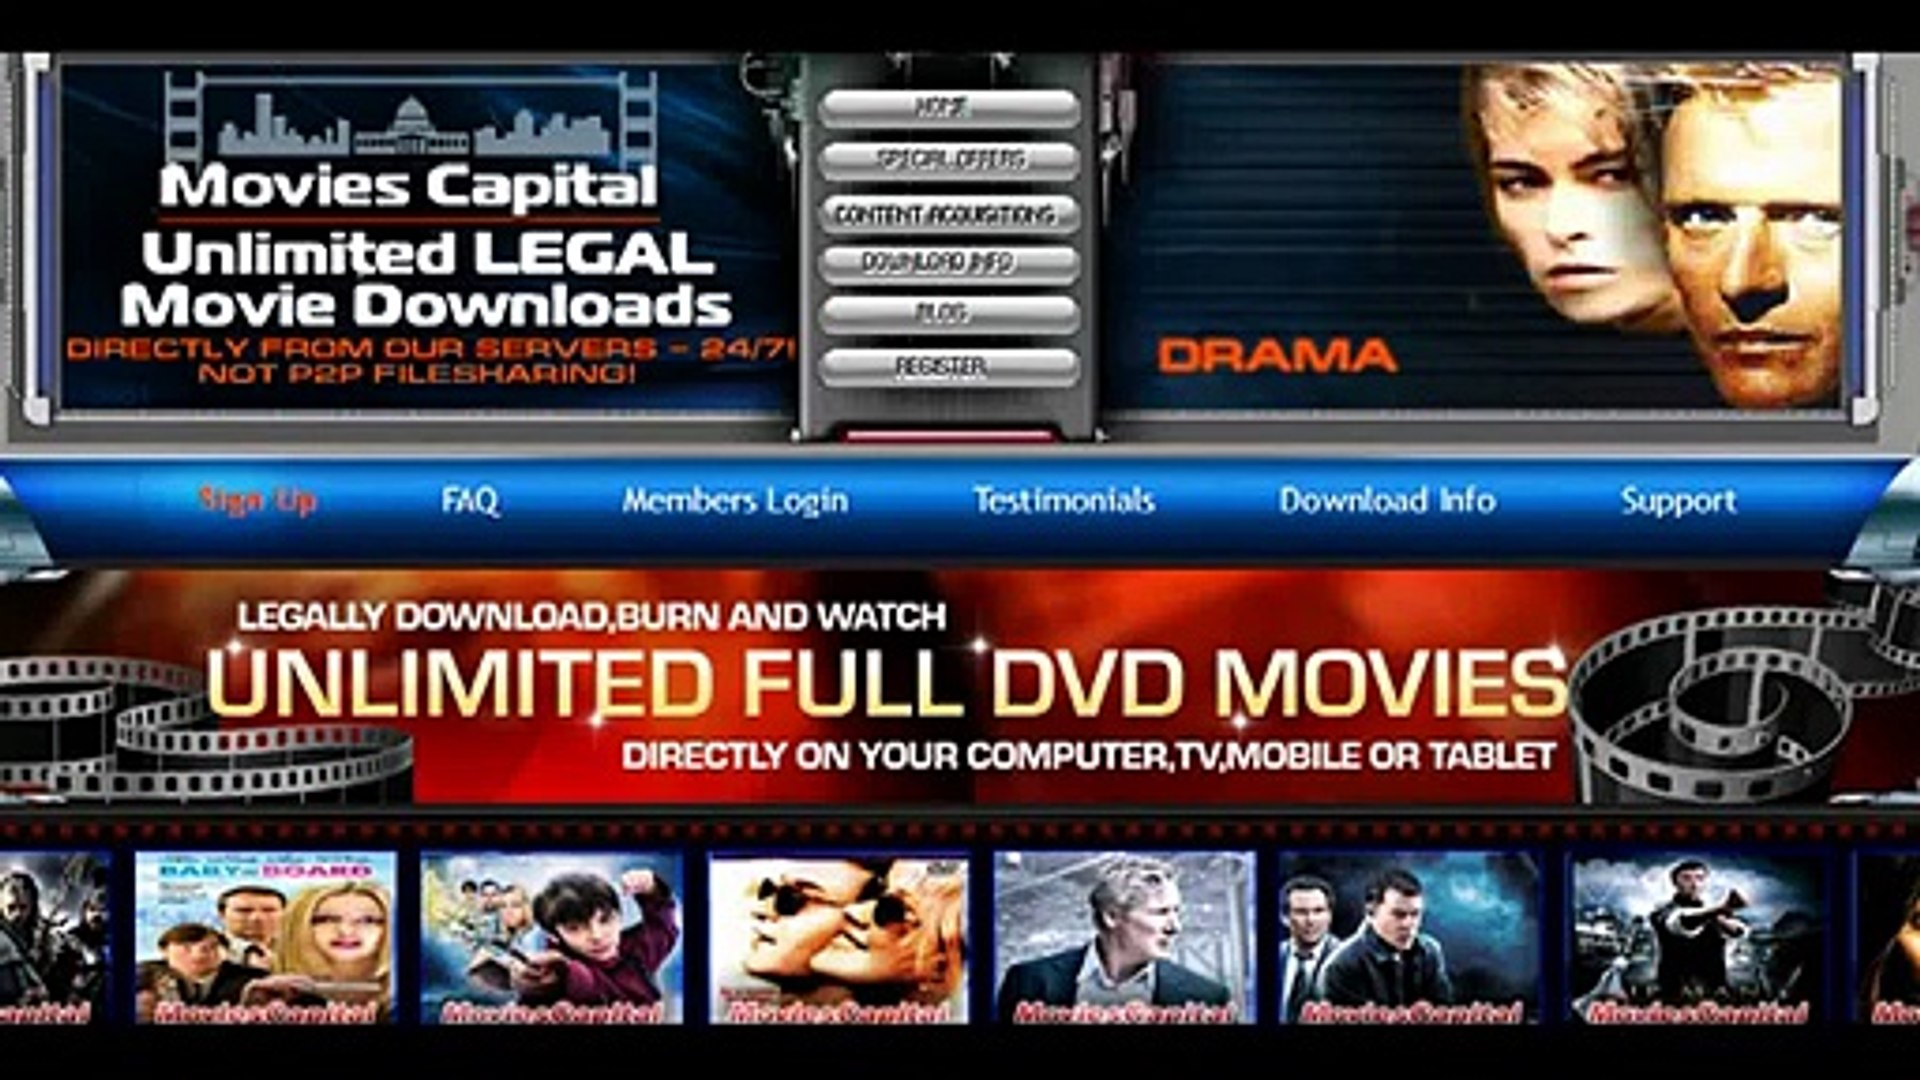 Movies Capital UNLIMITED FREE DVD MOVIES DOWNLOAD TO ANYTHING!